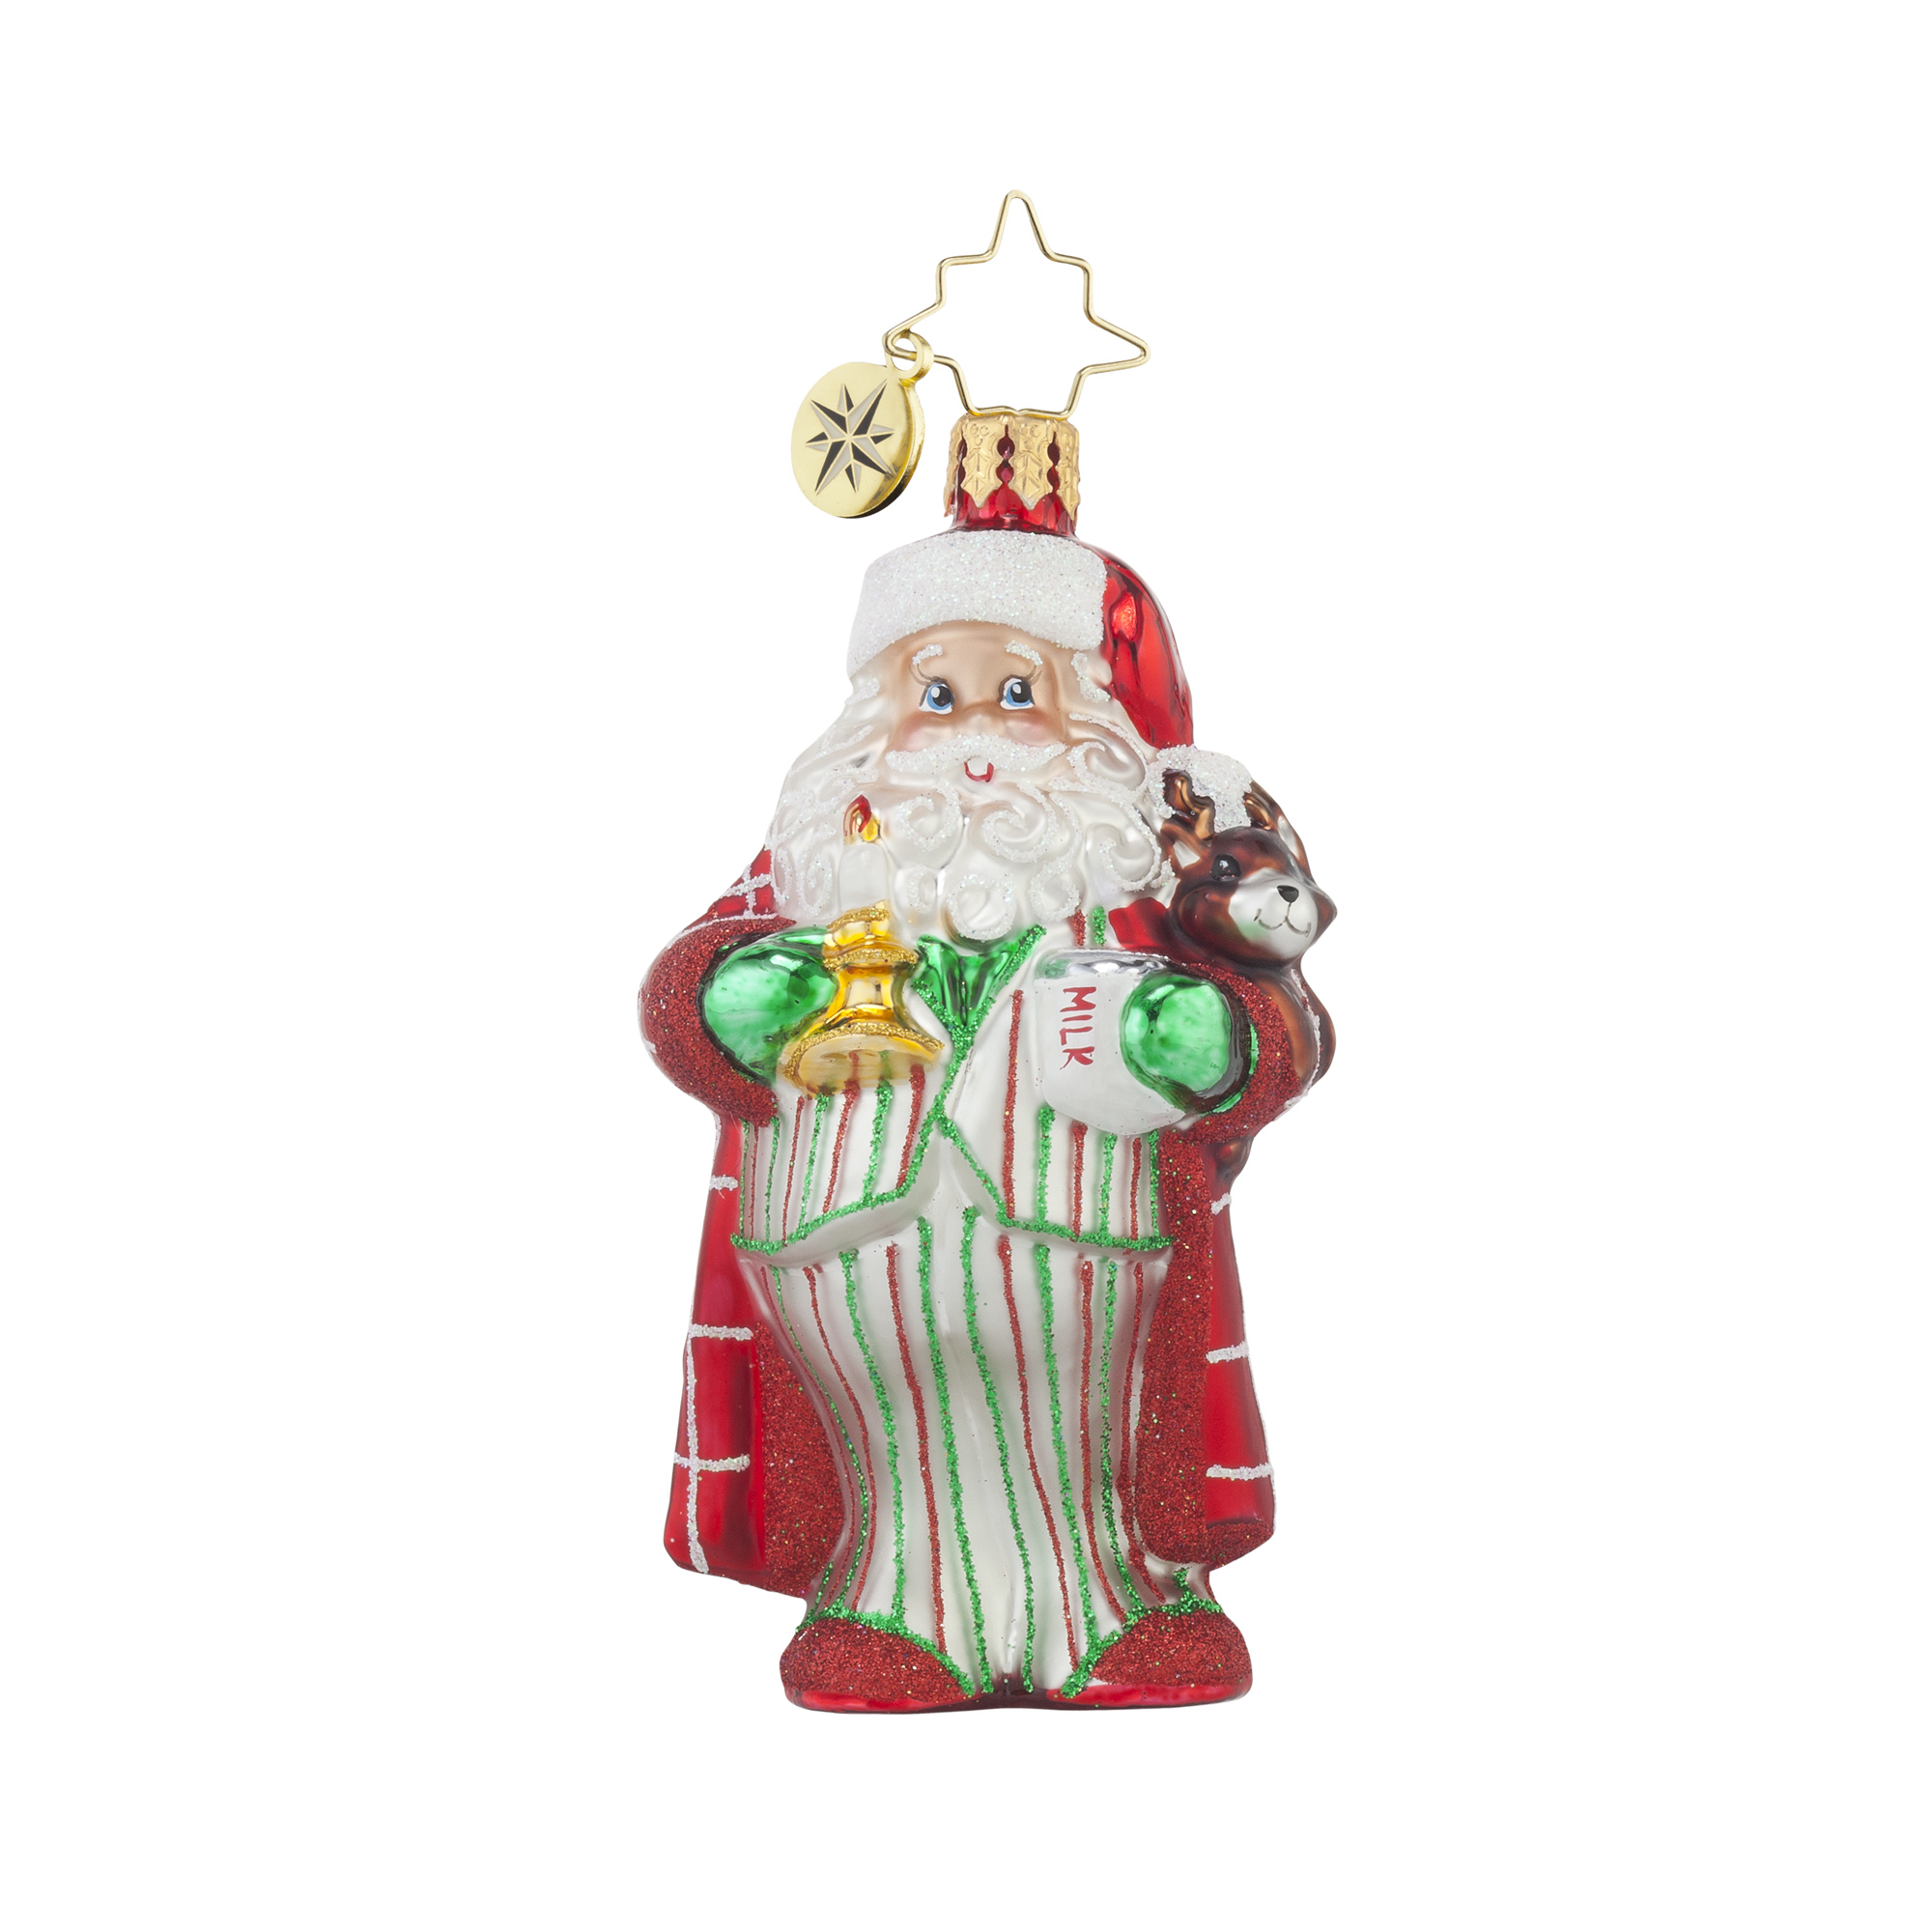 vintage decor santa claus pair art of whimsical santas pin decorative folk figurines decorations christmas